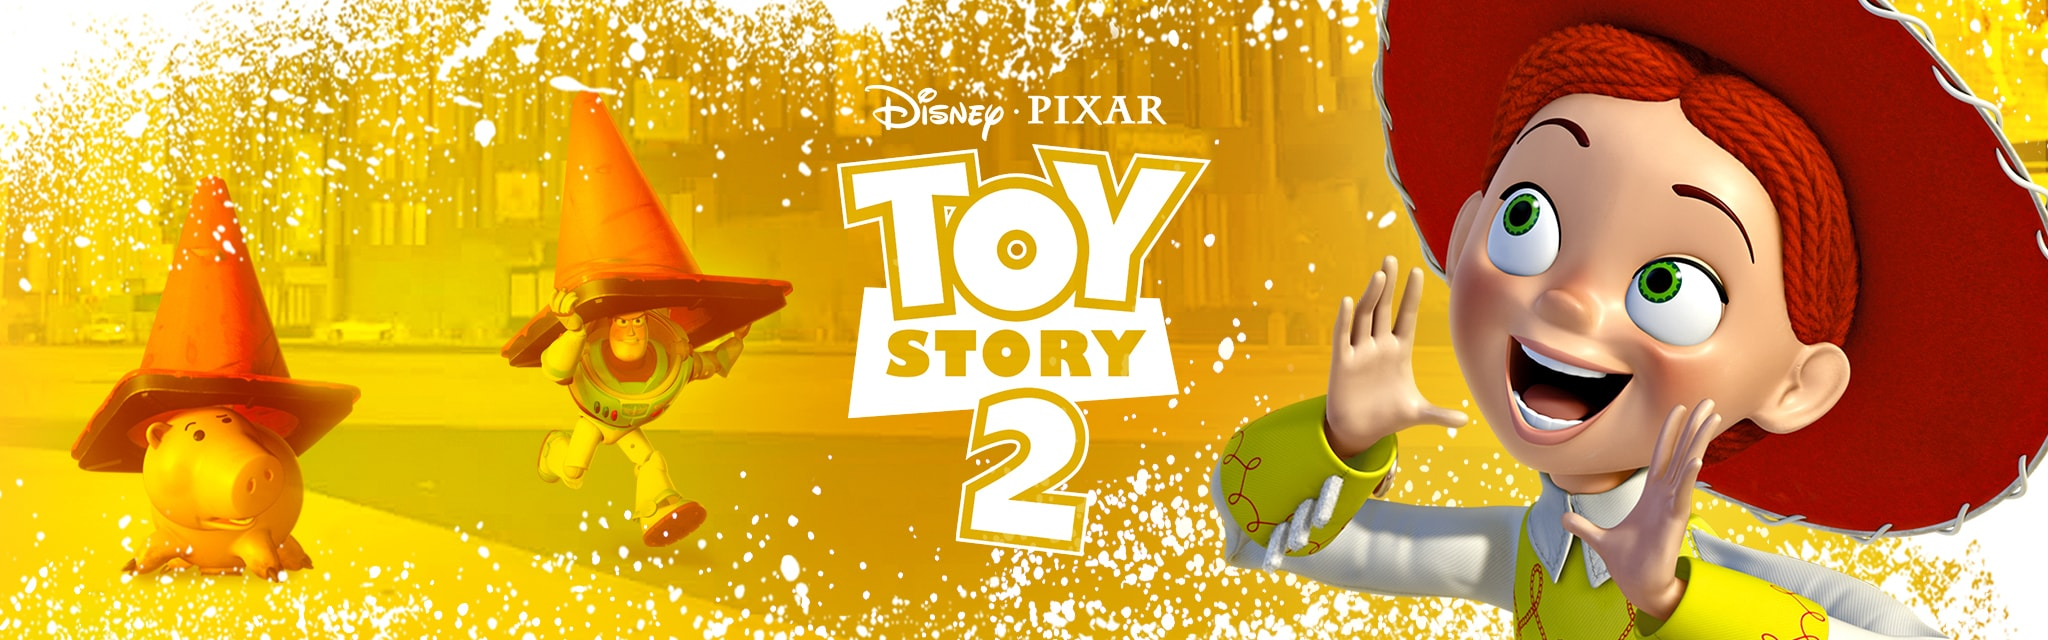 Disney Pixar - Toy Story 2